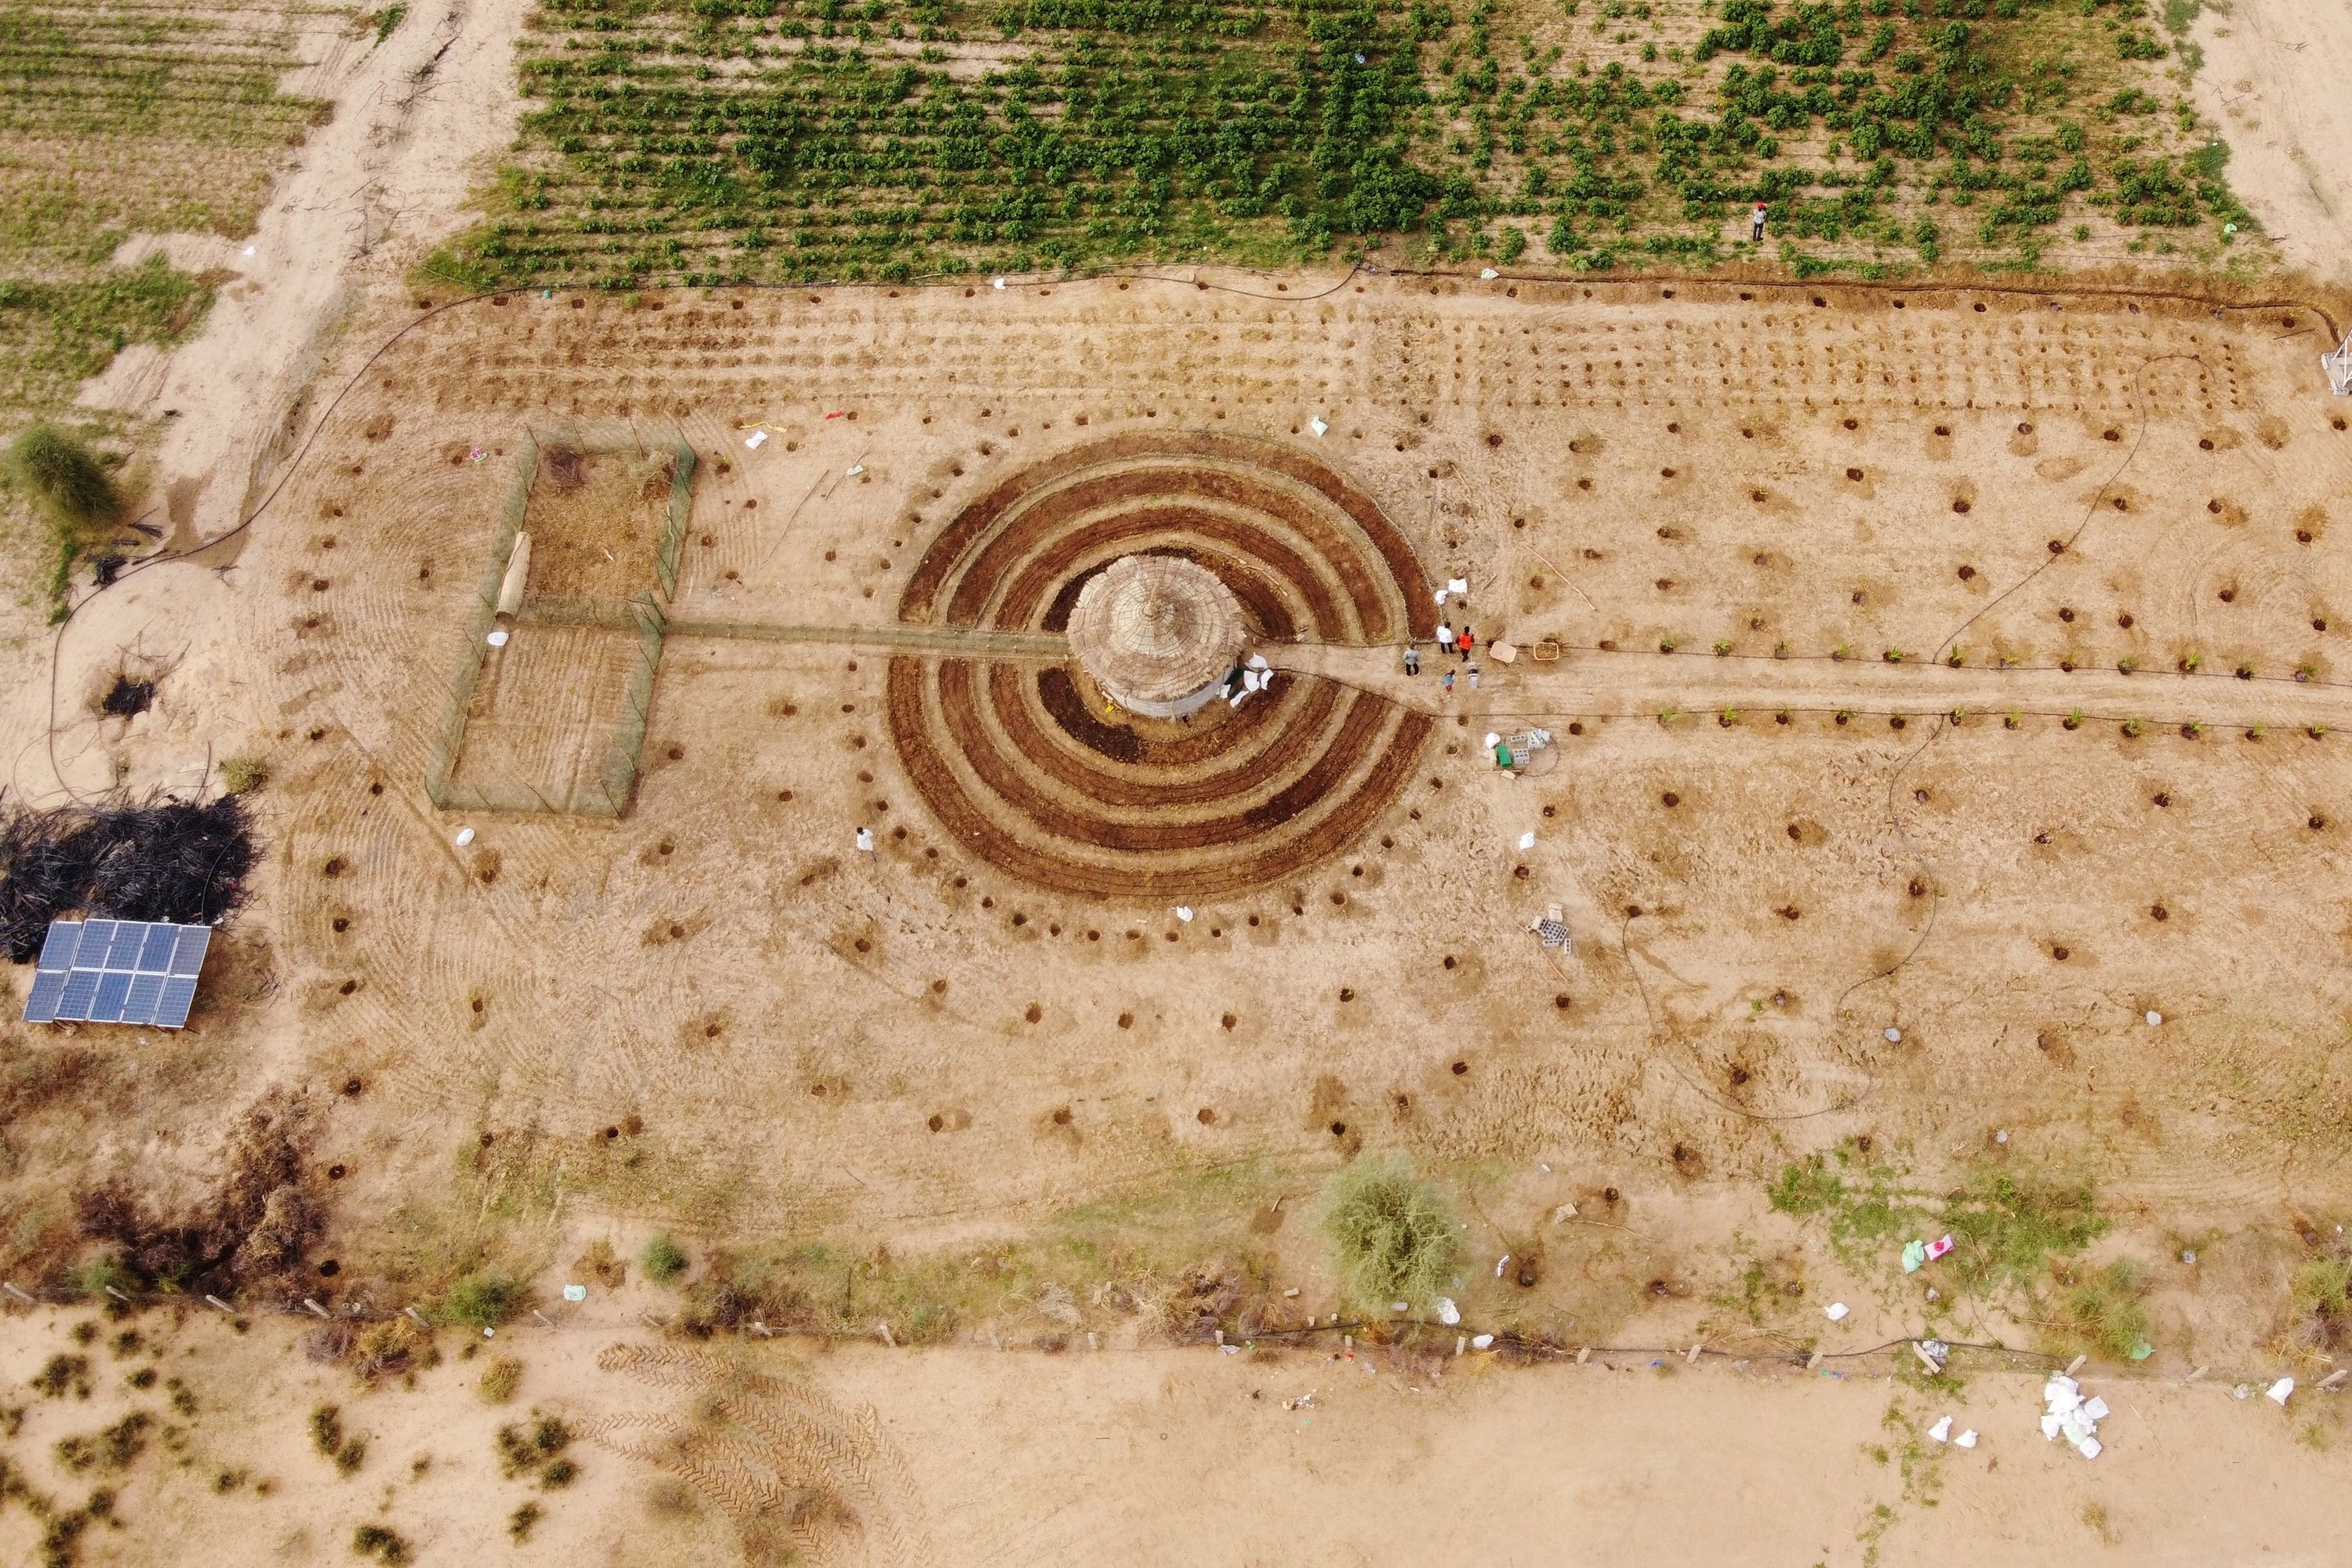 An overhead shot of a large series of circles carved into farmland, with people and solar panels nearby